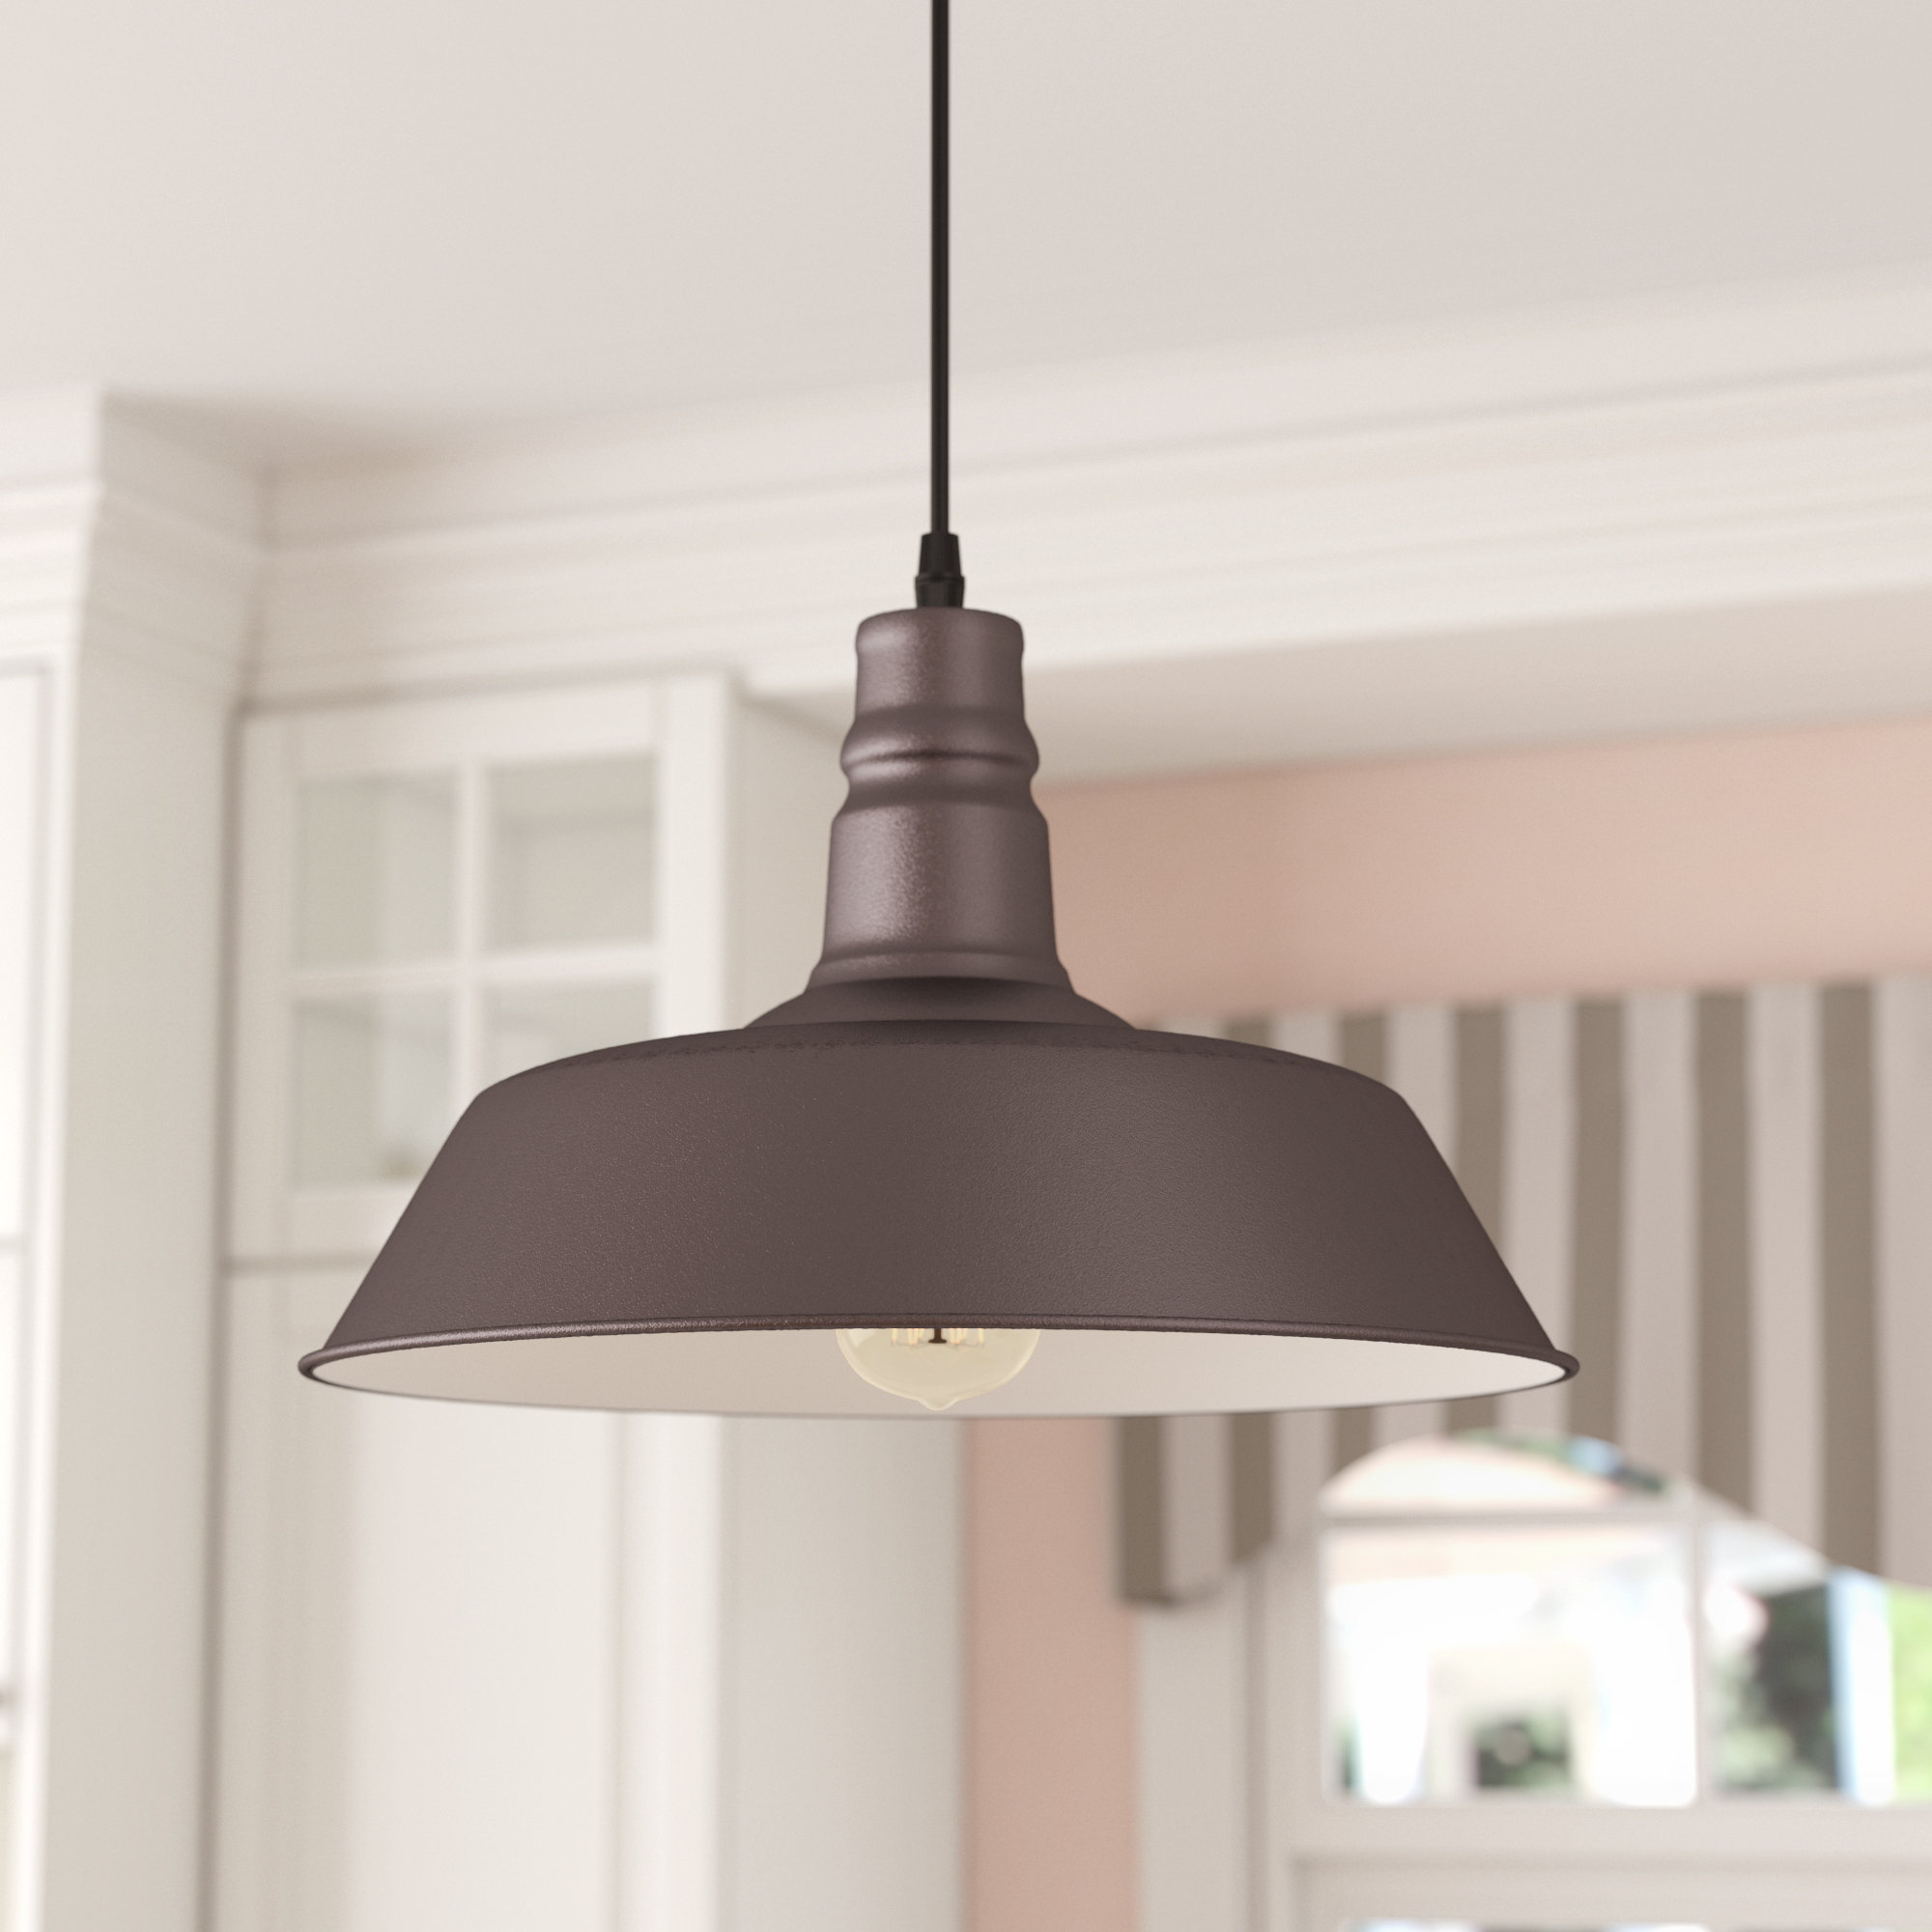 Adriana Black 1 Light Single Dome Pendants With Regard To Best And Newest Bouvet 1 Light Dome Pendant (View 5 of 20)